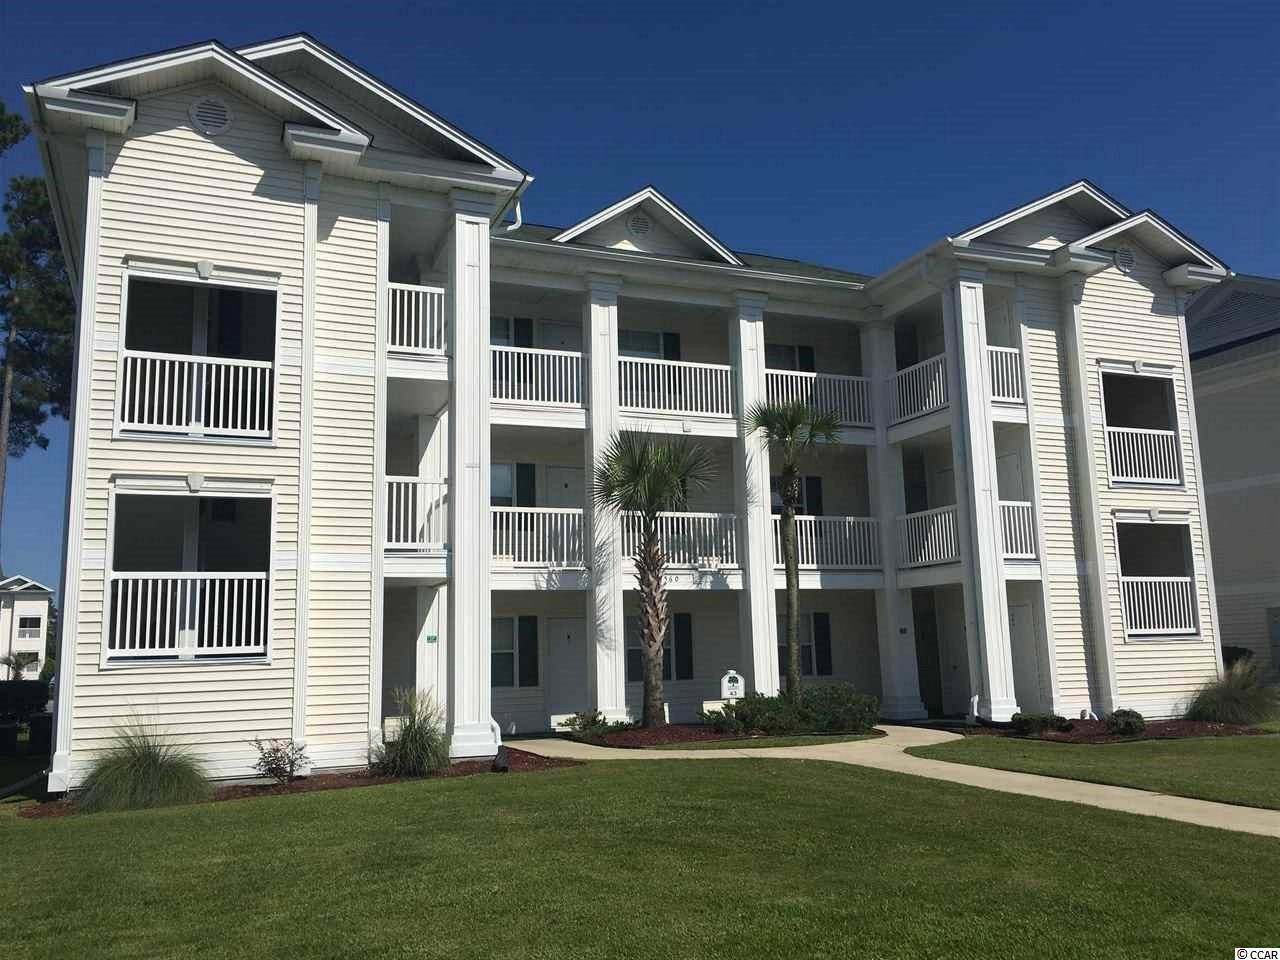 Condo in RIVER OAKS CONDOS : Myrtle Beach South Carolina